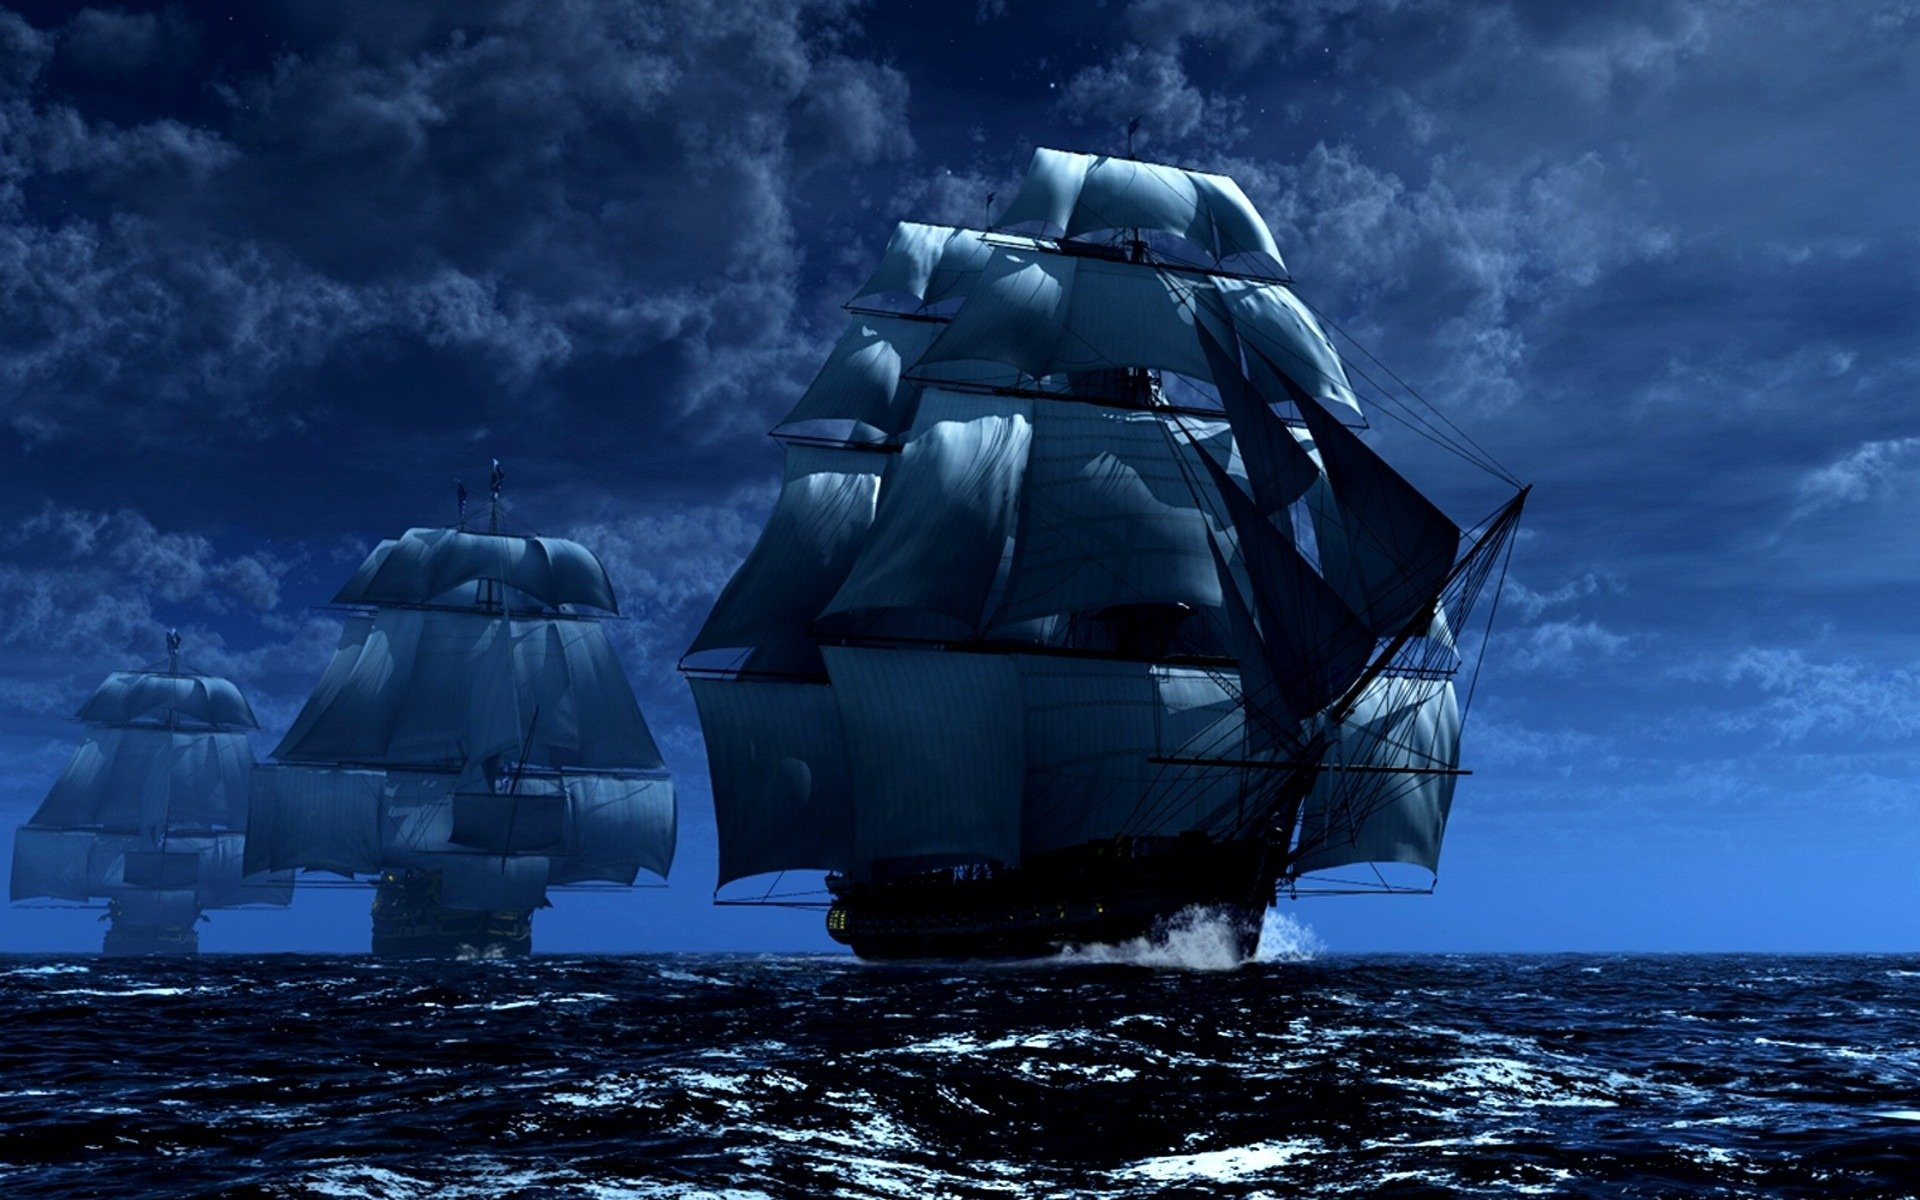 The sailing ships wallpapers and images   wallpapers pictures photos 1920x1200